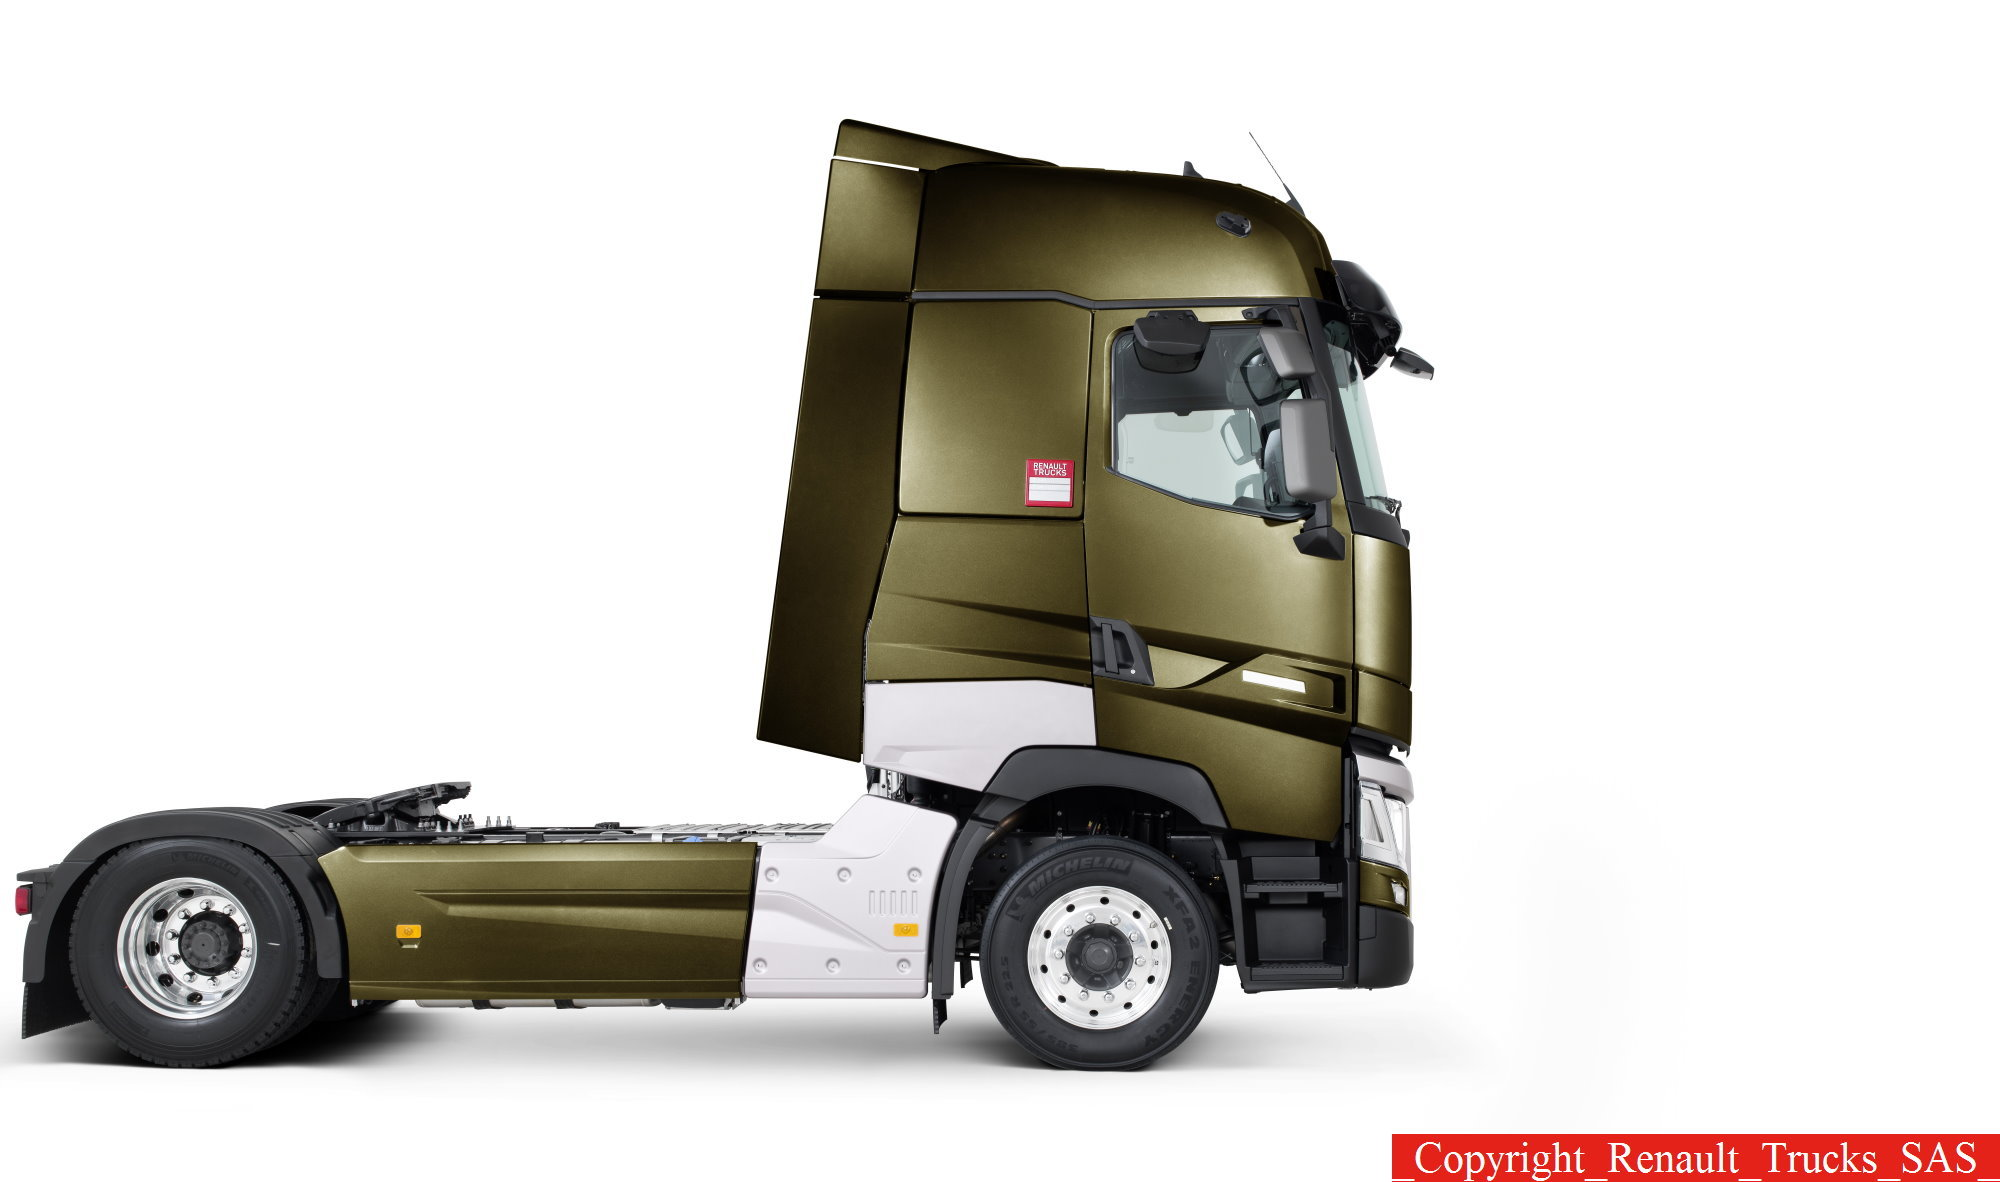 renault trucks a pr sent une nouvelle gamme. Black Bedroom Furniture Sets. Home Design Ideas